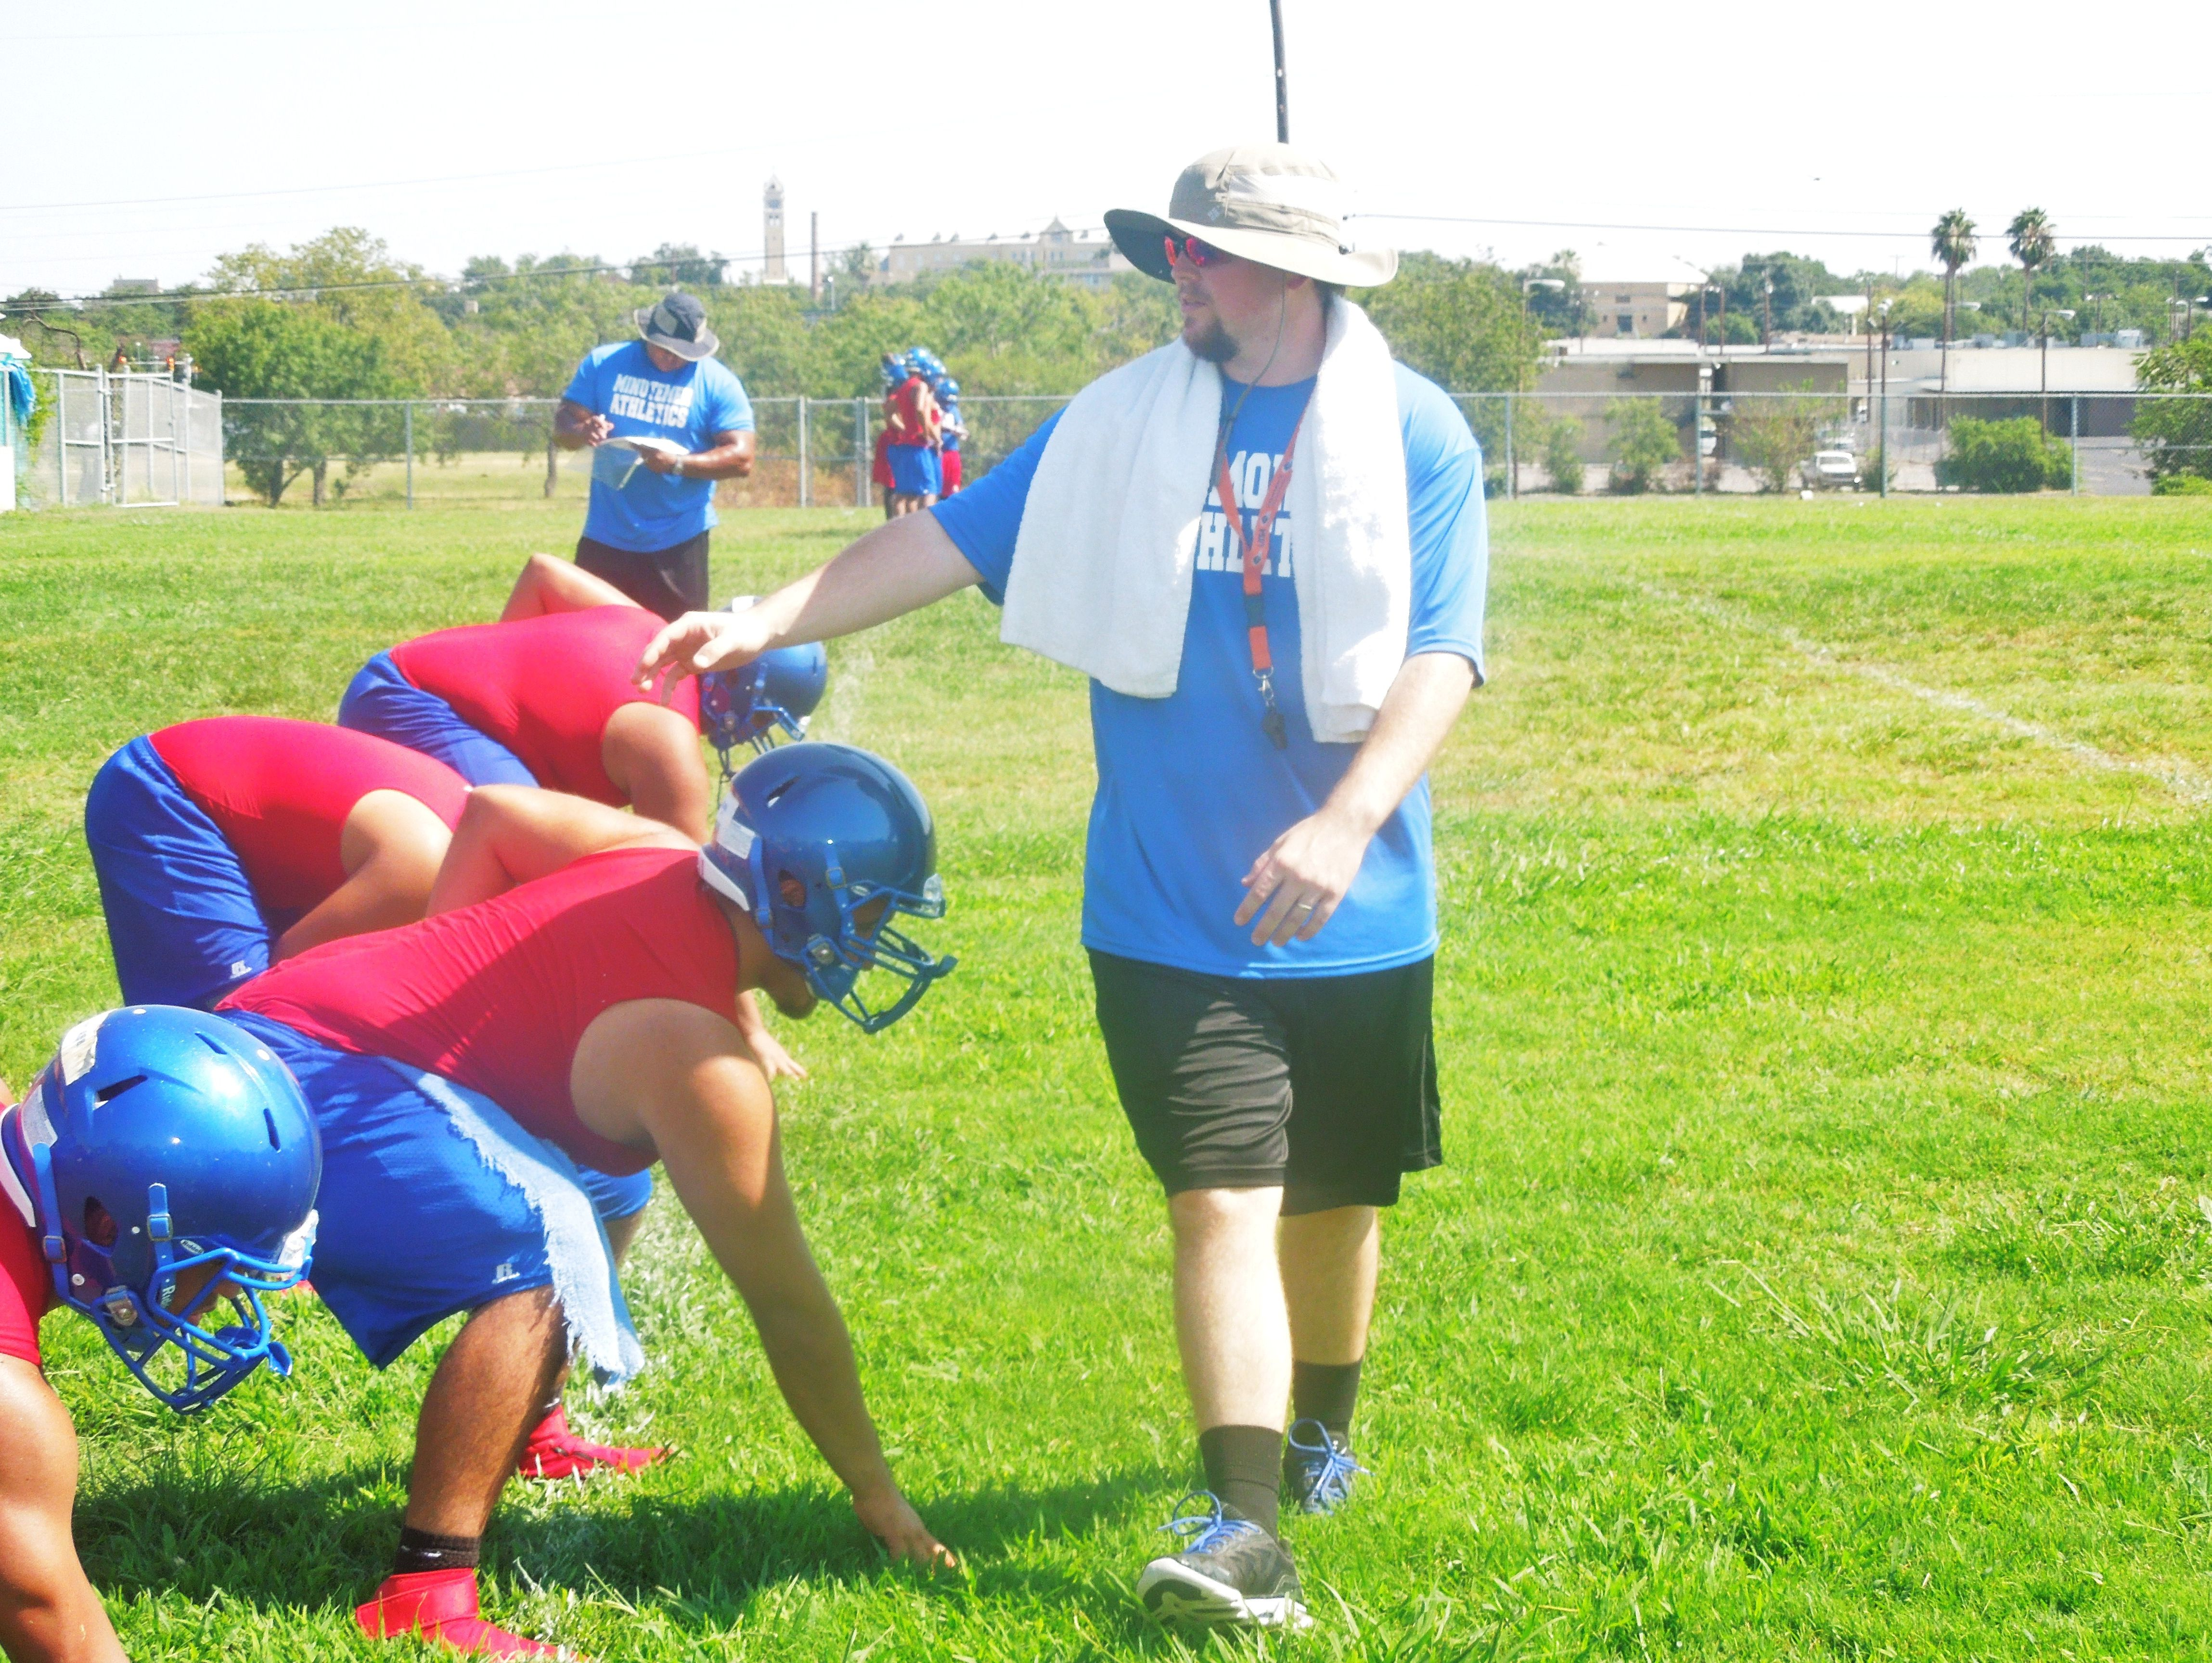 Former UTSA center Nate Leonard, working with his offensive lineman during practice Monday, started all 46 games for the Roadrunners in their first four seasons.